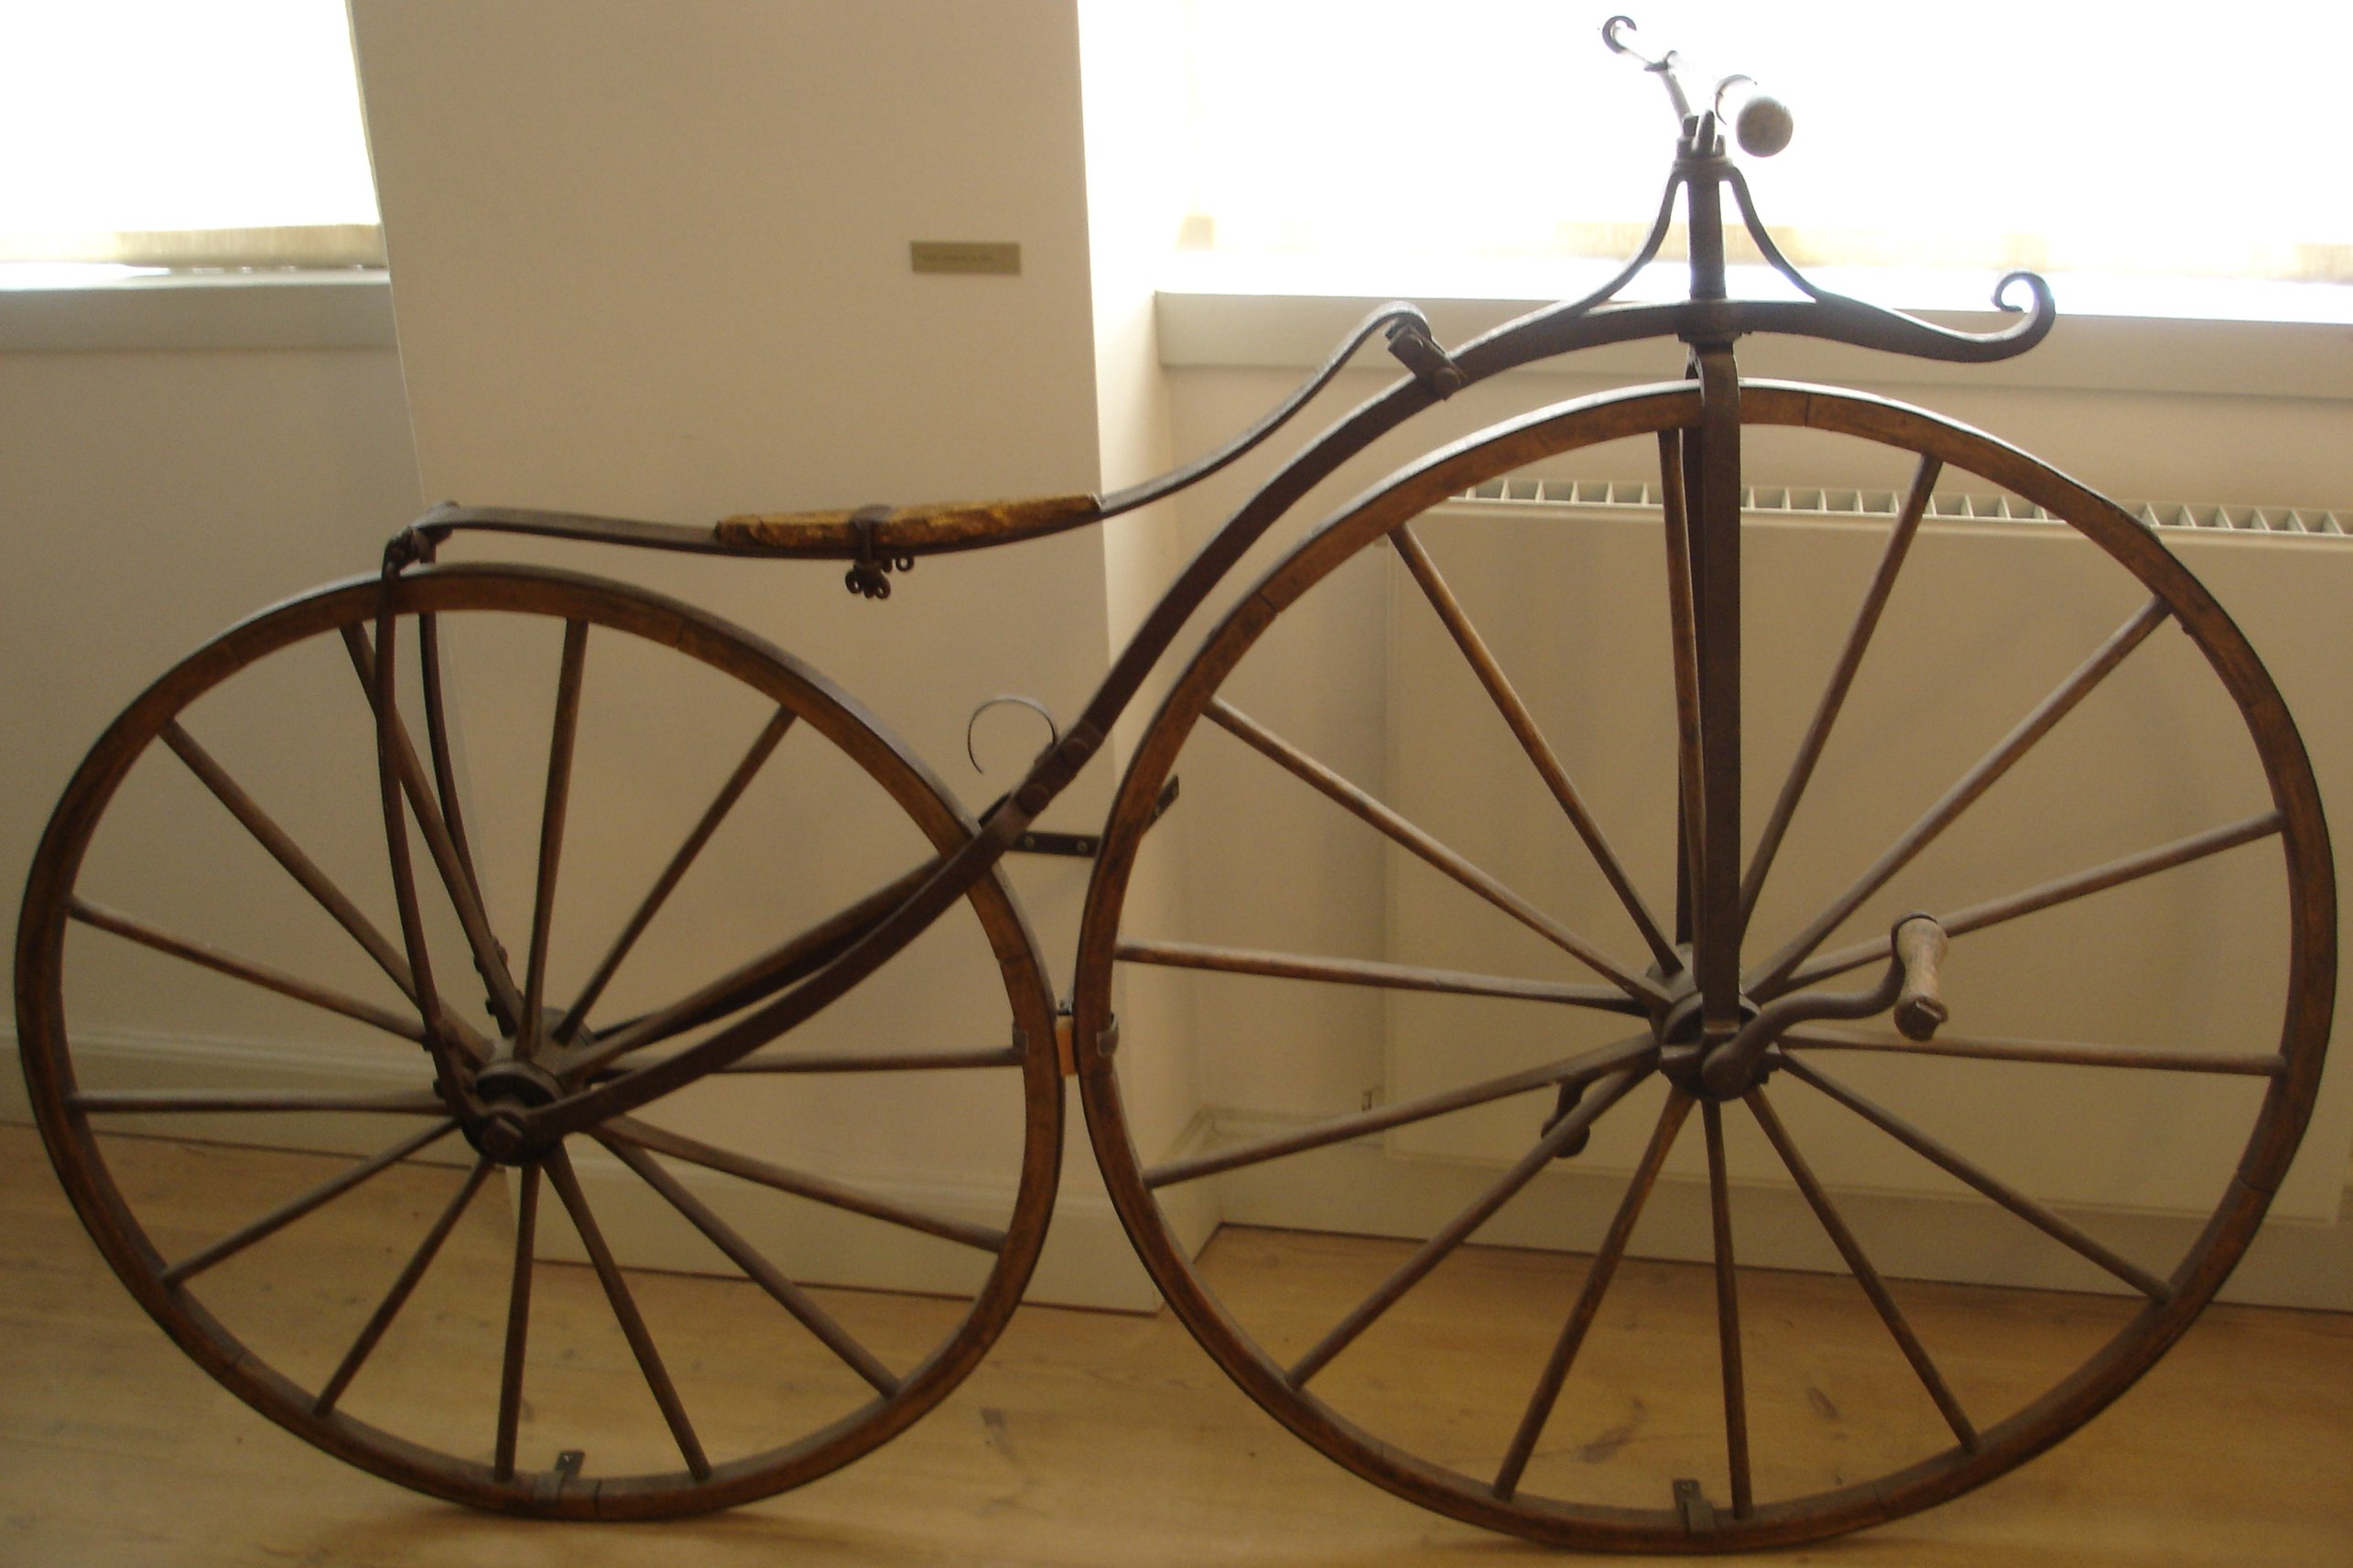 http://dic.academic.ru/pictures/wiki/files/66/Bicycle_1865.jpg